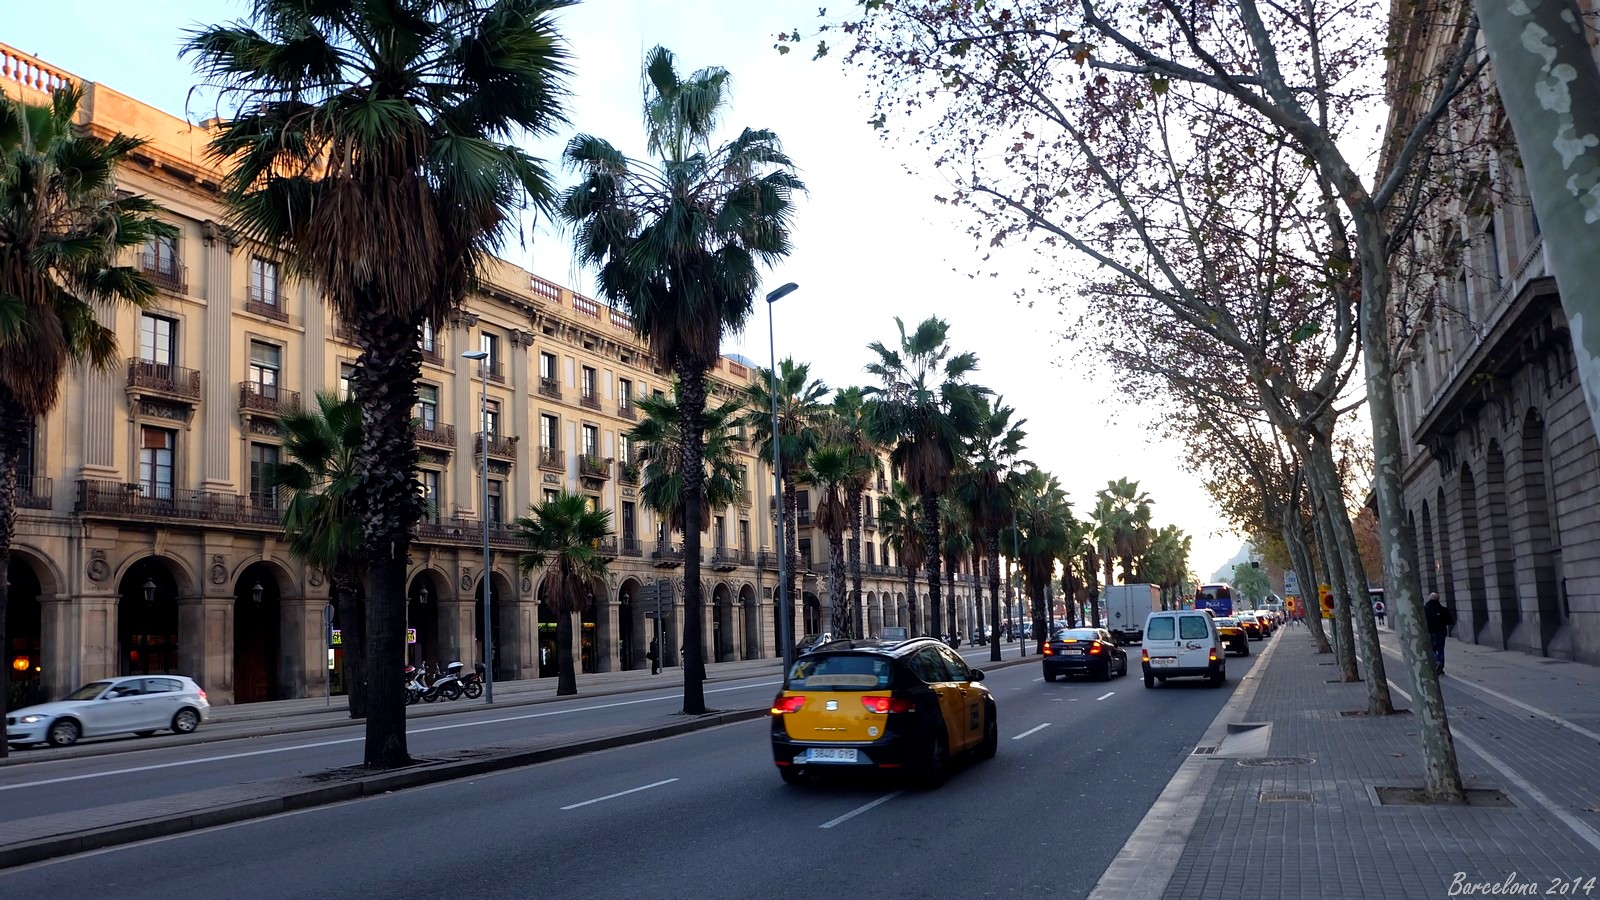 Barcelona day_1, Passeig d Isabel II